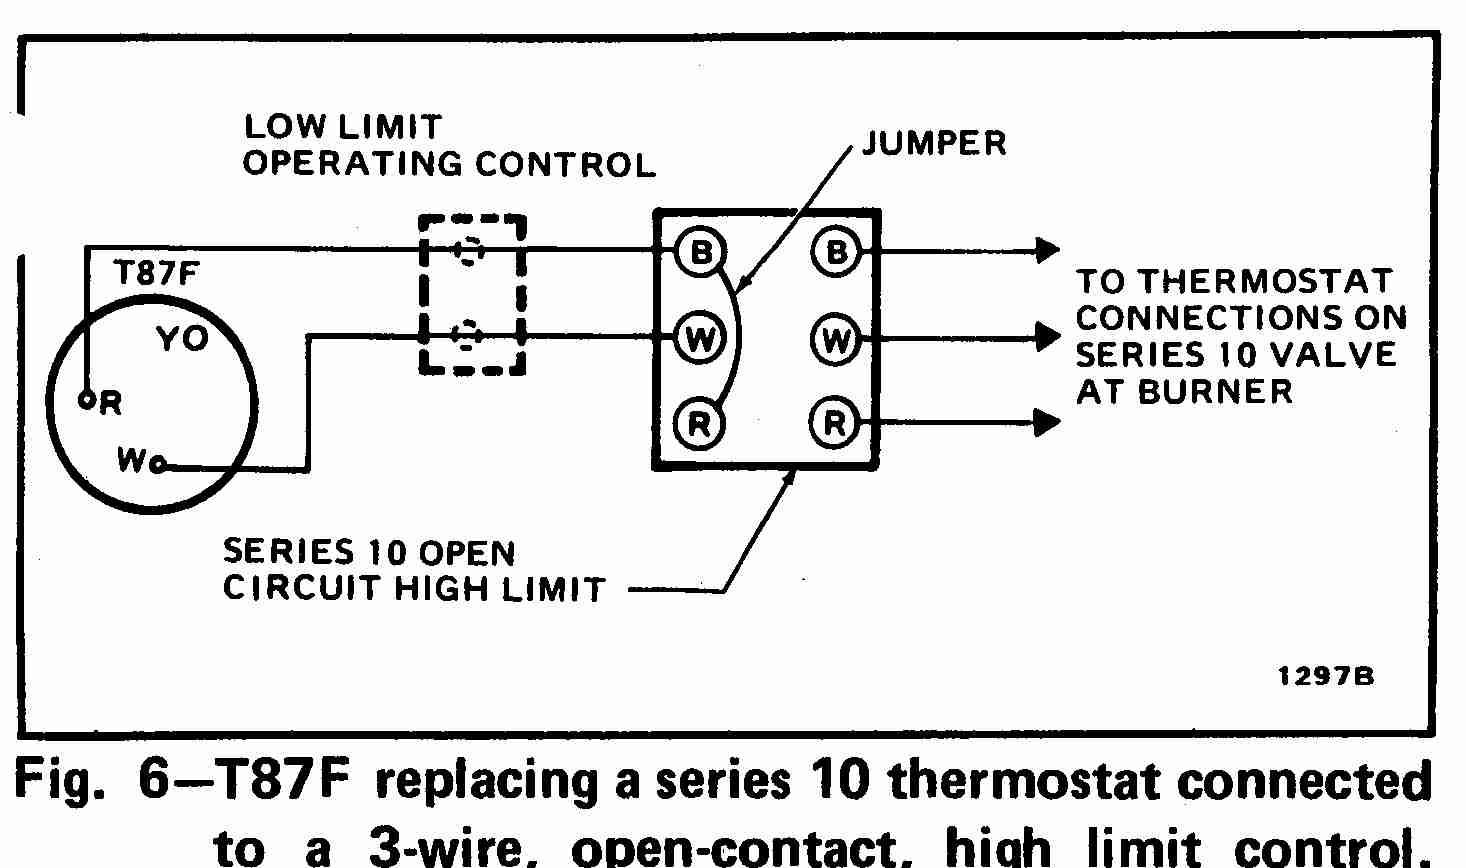 TT_T87F_0002_3WHL_DJF room thermostat wiring diagrams for hvac systems imit boiler thermostat wiring diagram at crackthecode.co